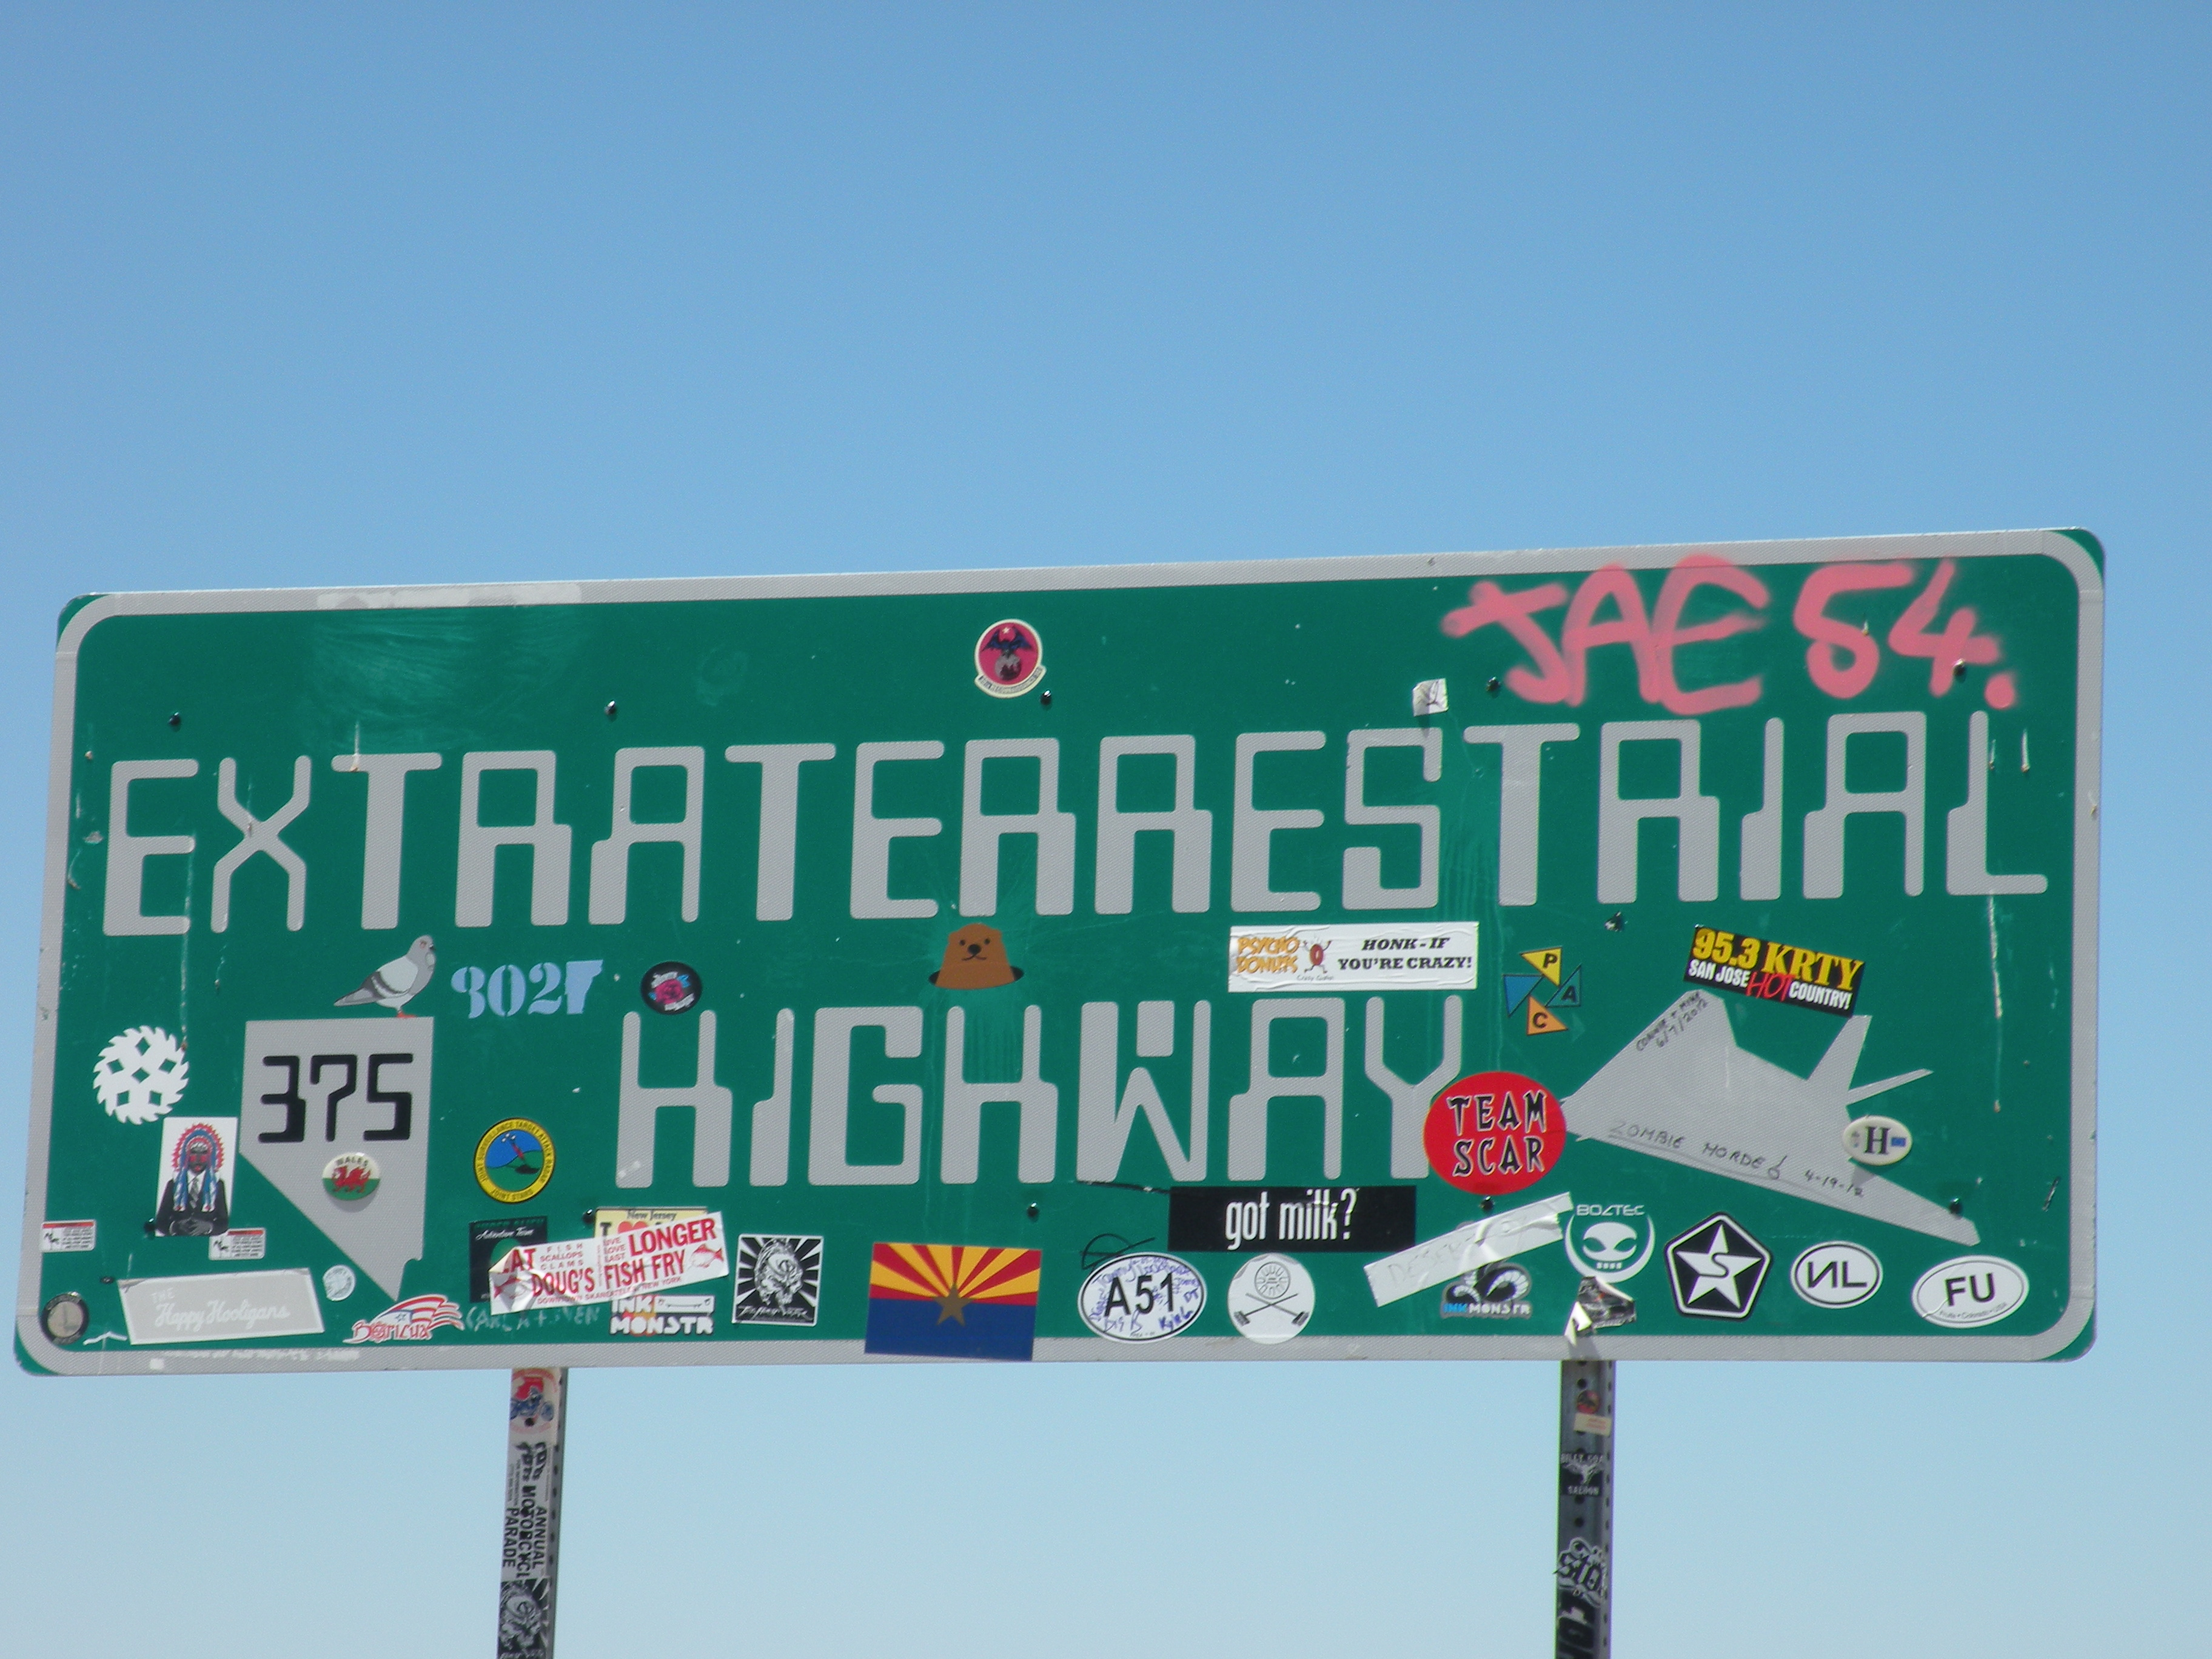 http://upload.wikimedia.org/wikipedia/commons/4/49/Extraterrestrial_highway_(Route_375).JPG